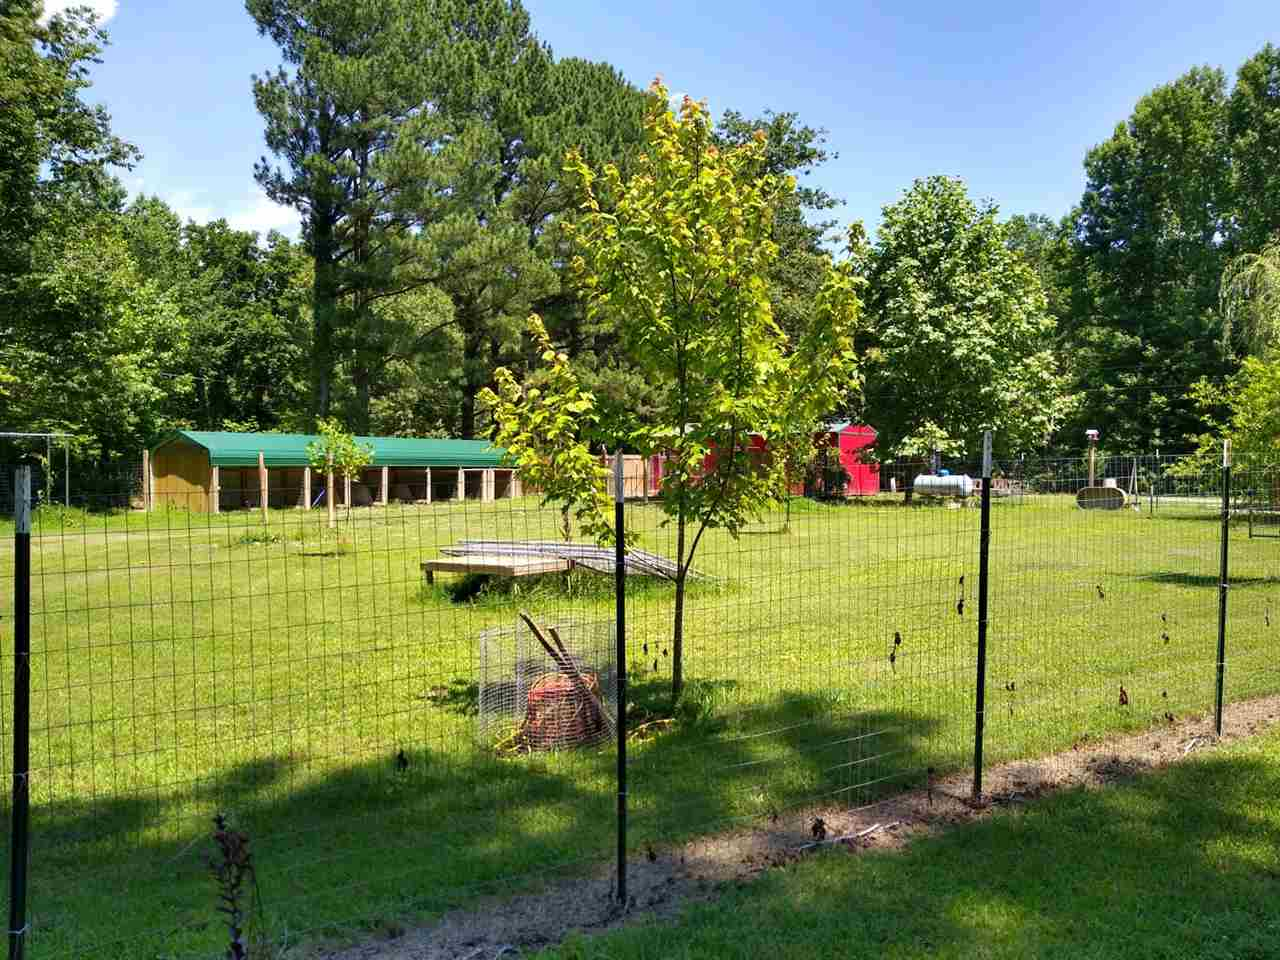 2057 Simpson Road, Dyersburg, Tennessee 38024, 3 Bedrooms Bedrooms, ,2 BathroomsBathrooms,Residential,For Sale,2057 Simpson Road,202513